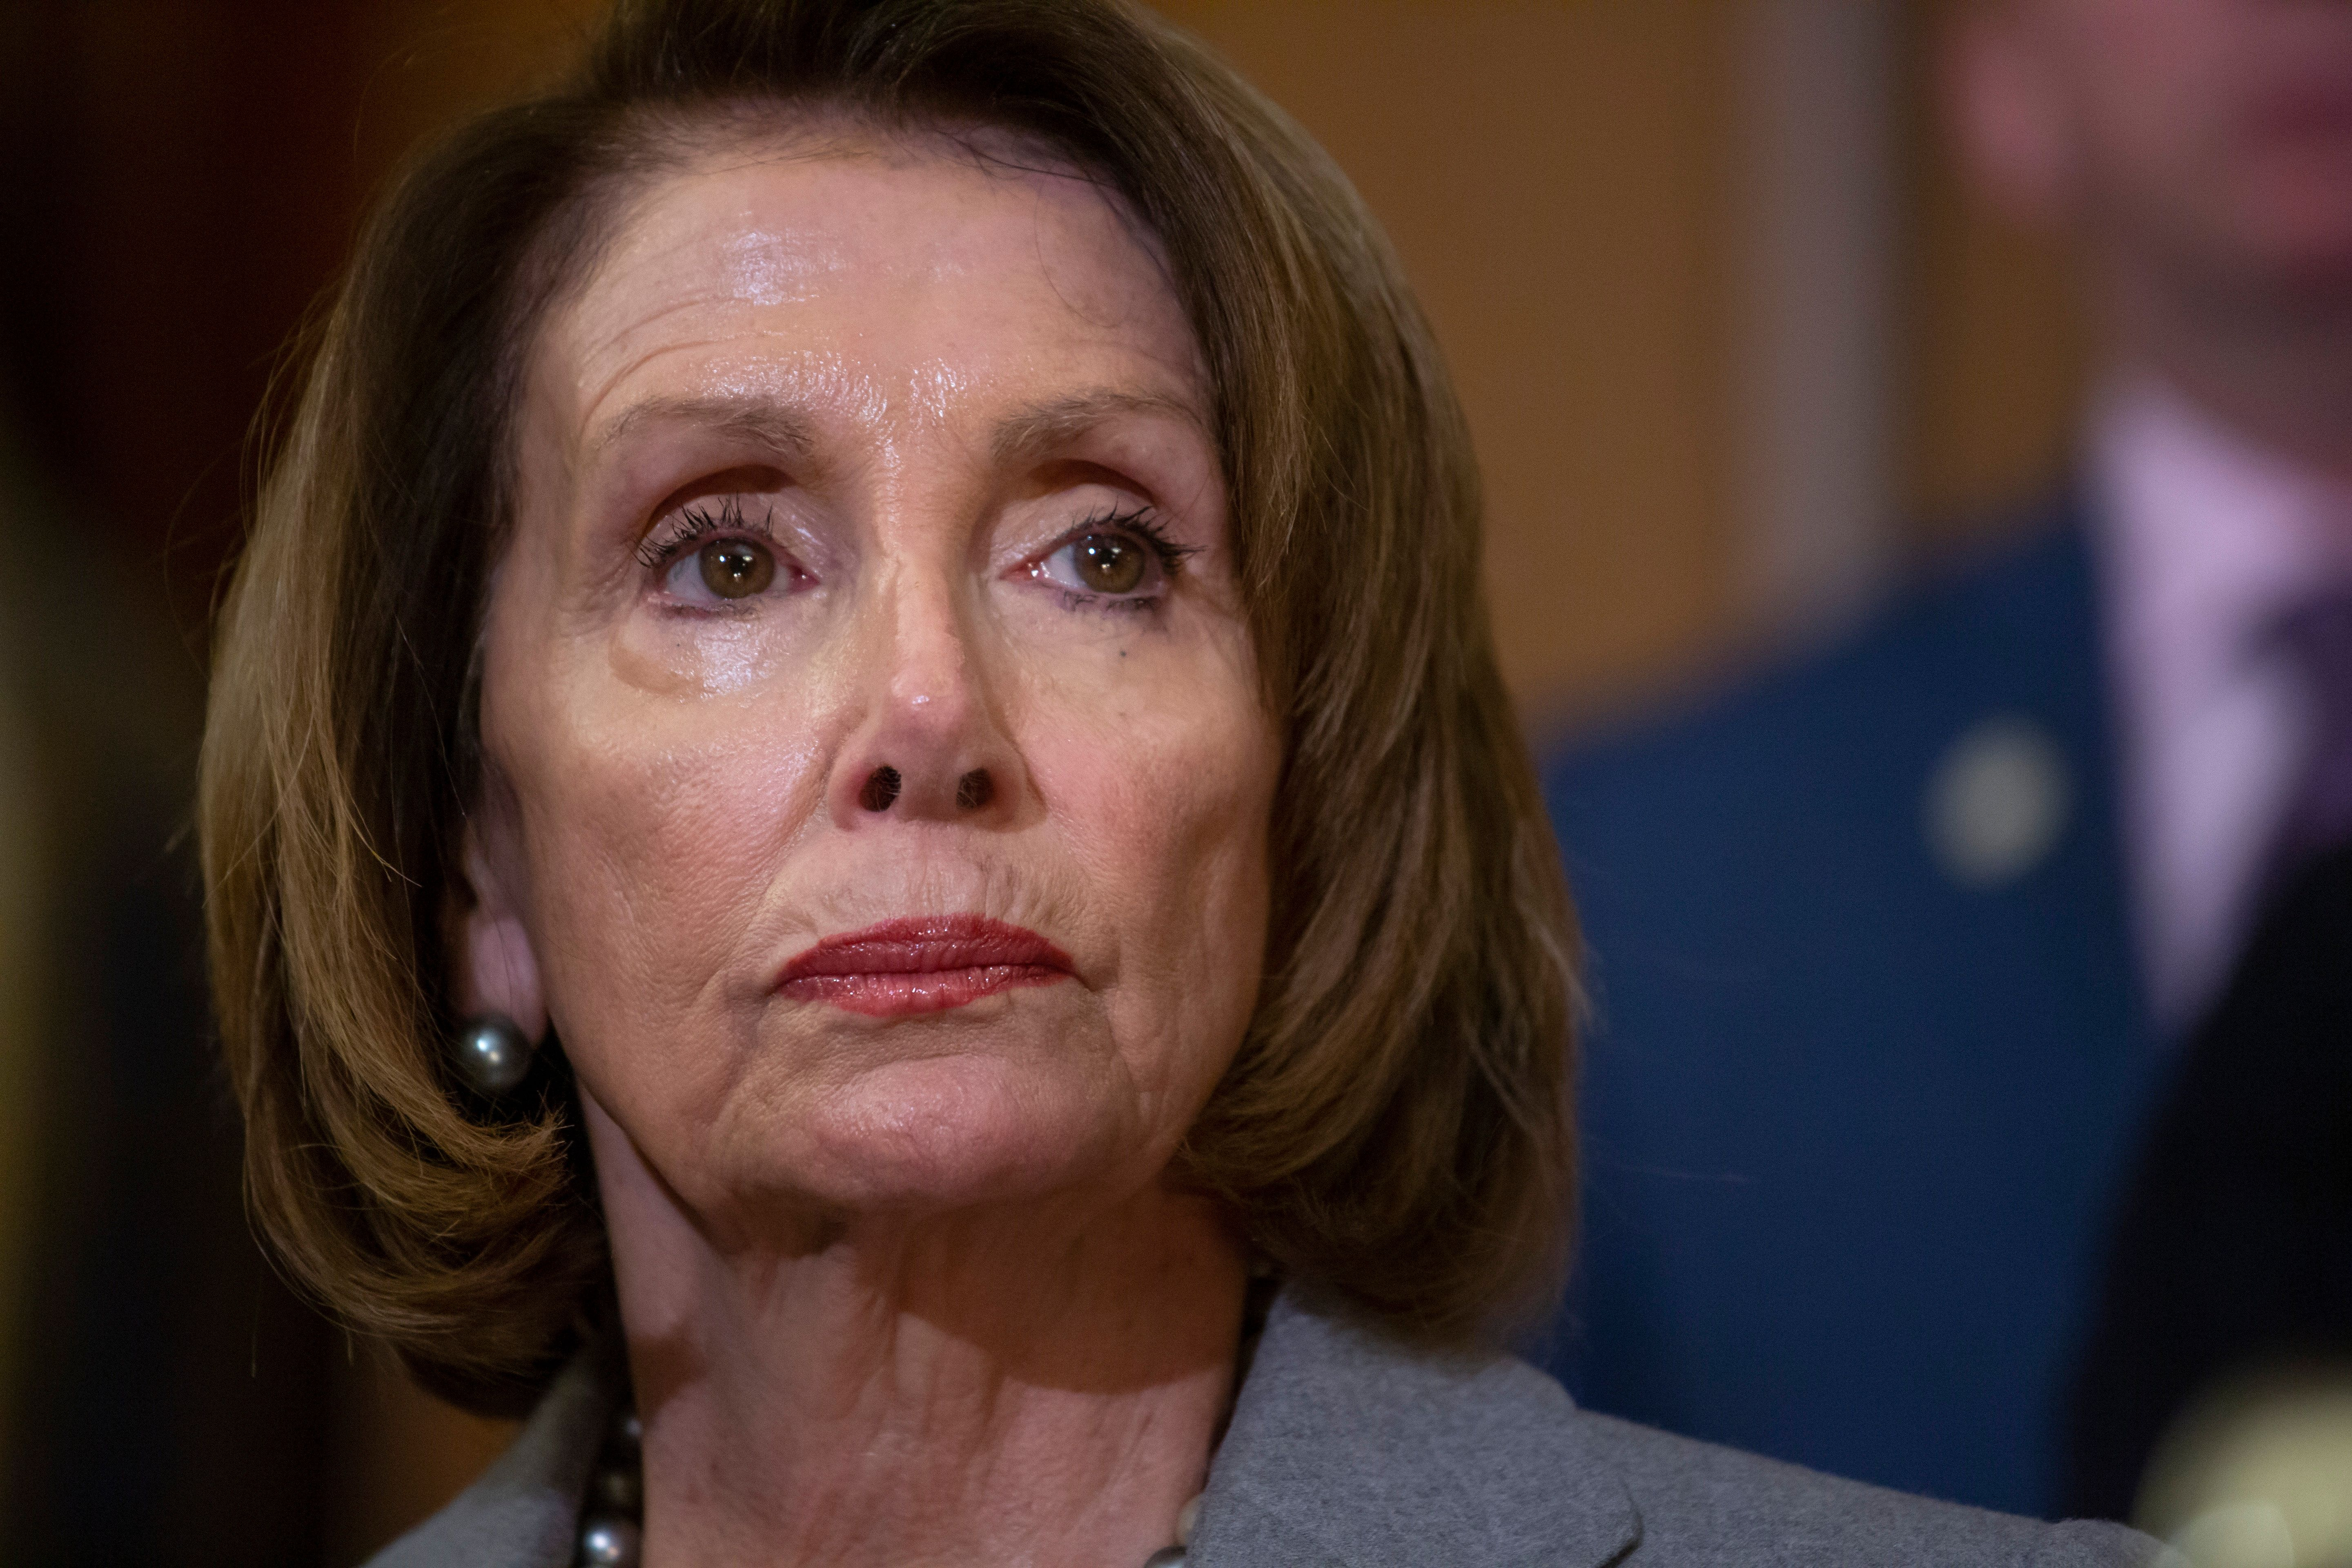 Speaker of the House Nancy Pelosi, D-Calif., meets with furloughed federal workers at an event to discuss the impact on families from the partial government shutdown and President Donald Trump's demands for funding a U.S.-Mexico border wall, on Capitol Hill in Washington, Wednesday, Jan. 9, 2019. (AP Photo/J. Scott Applewhite)